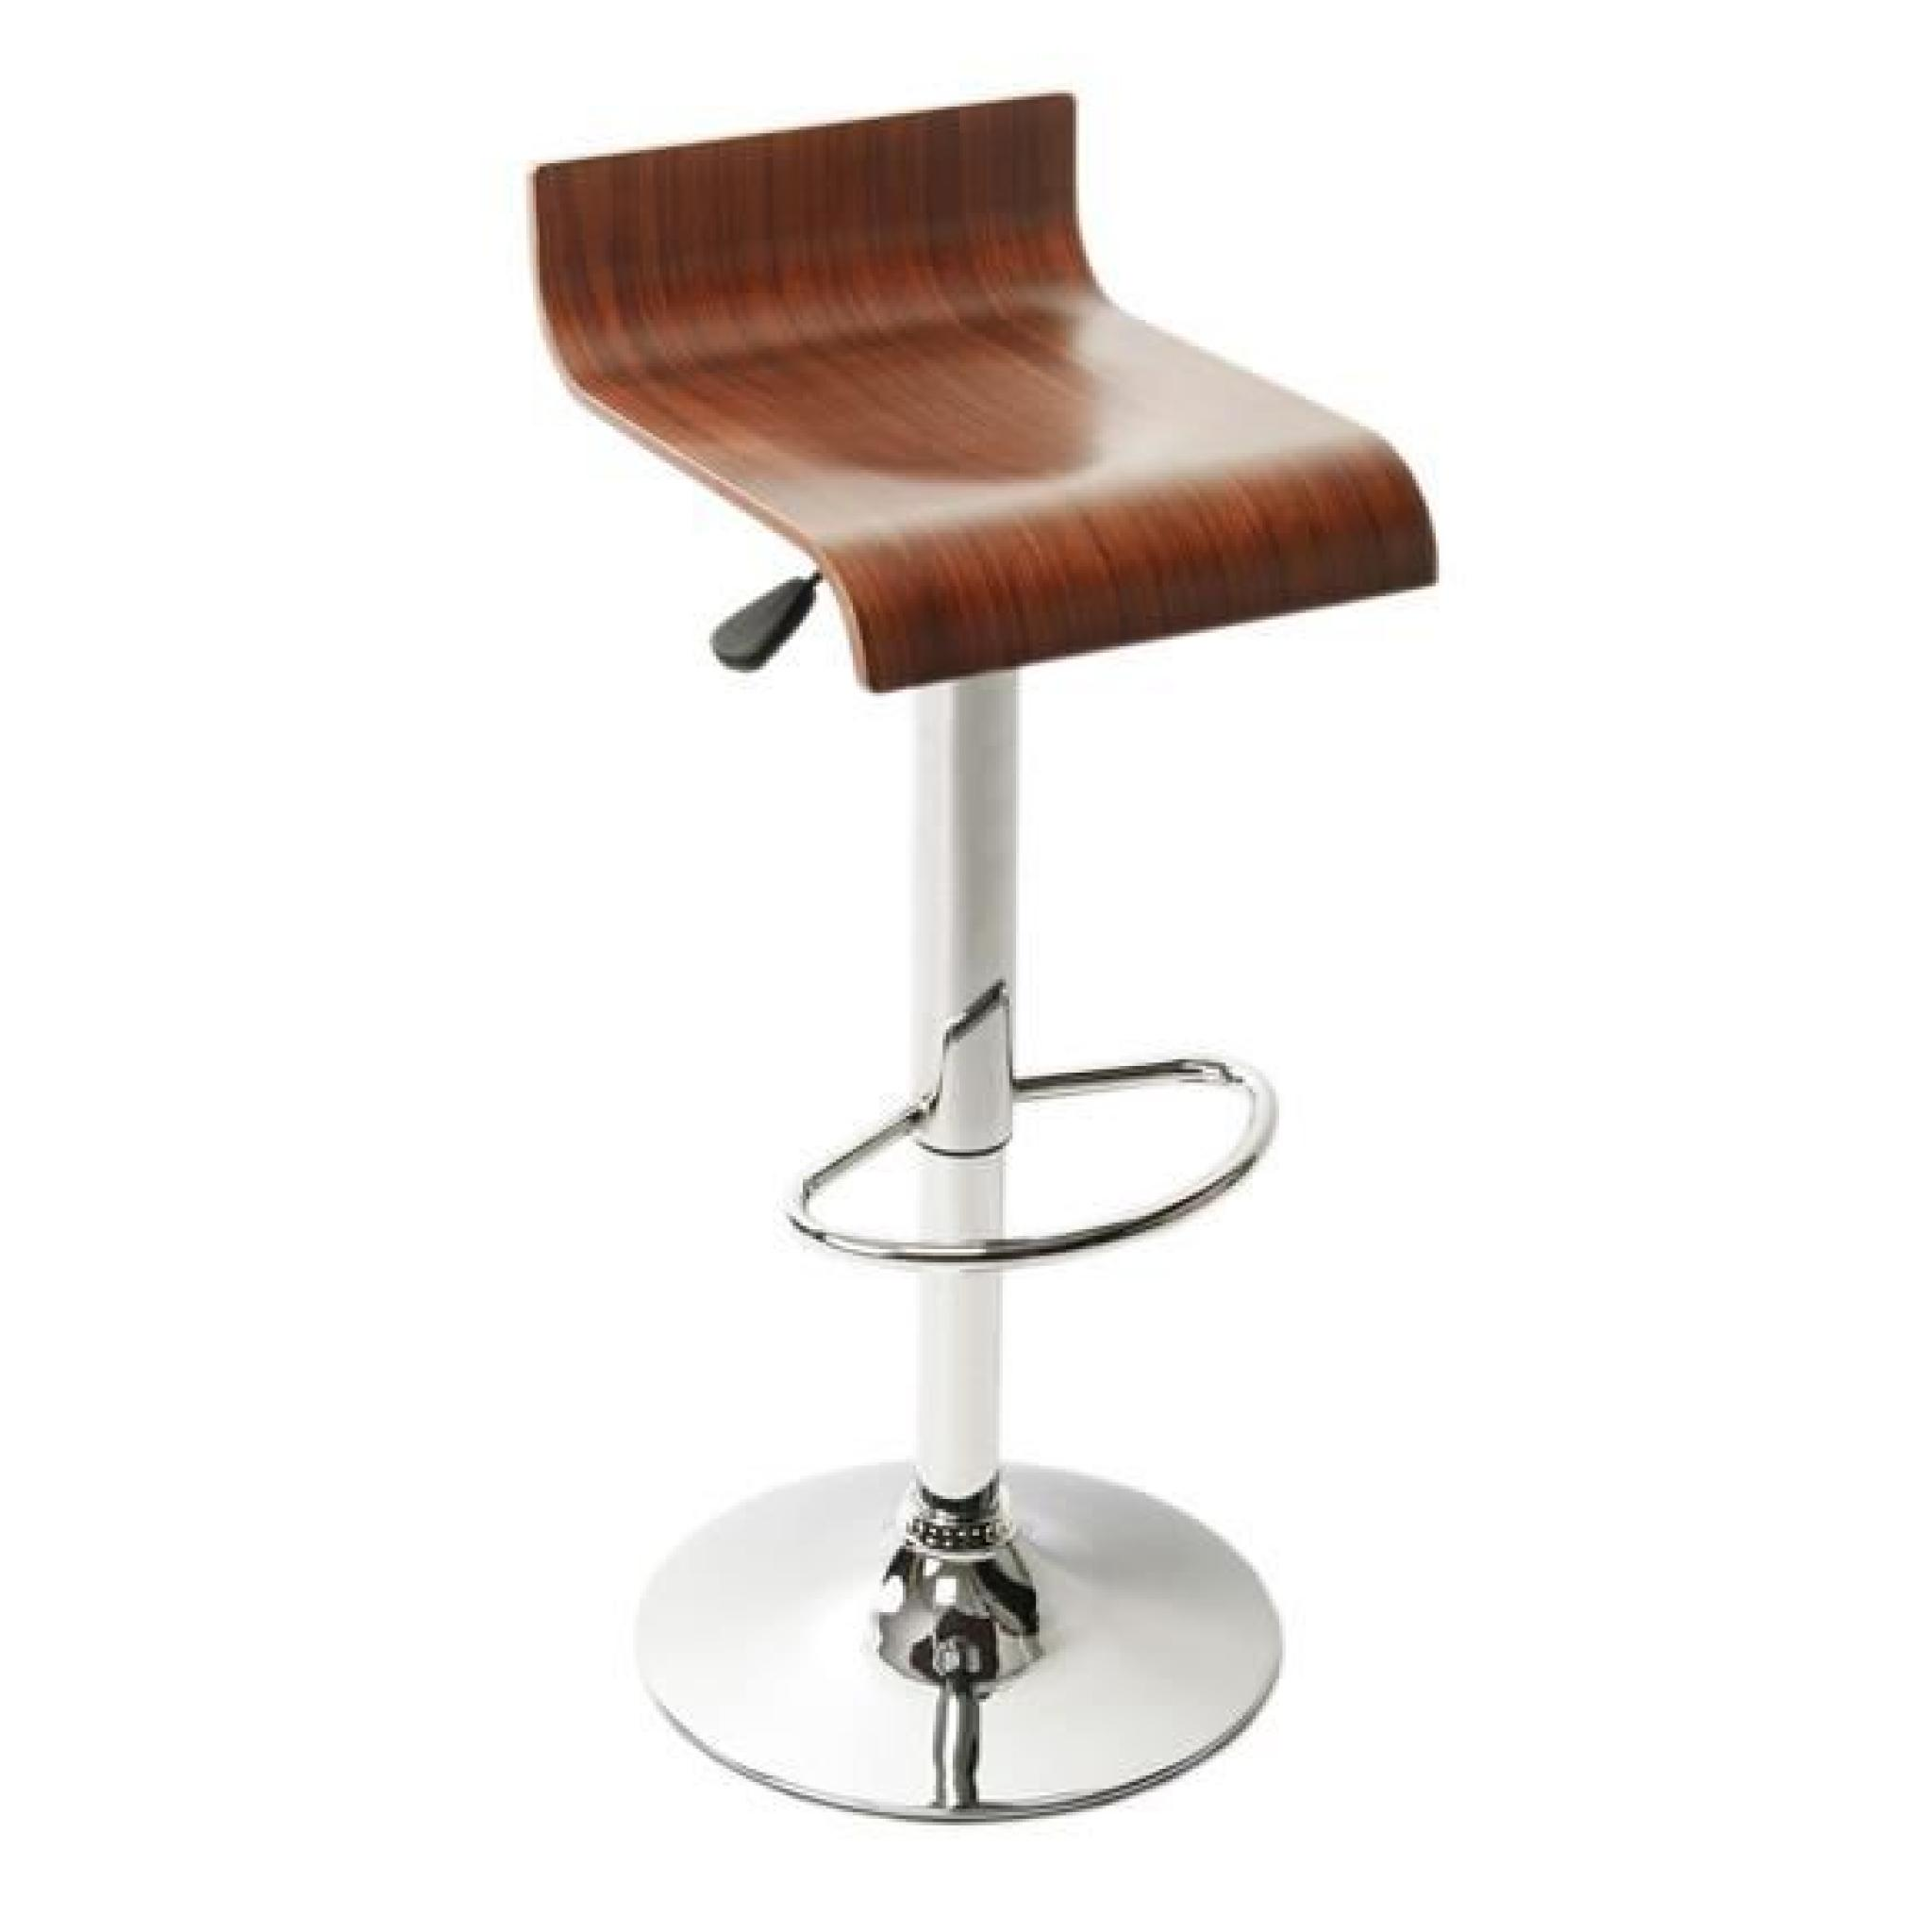 Clp tabouret de bar wood chrome bross avec si ge en bois r glable en hauteur 69 91 cm for Tabouret bar couleur